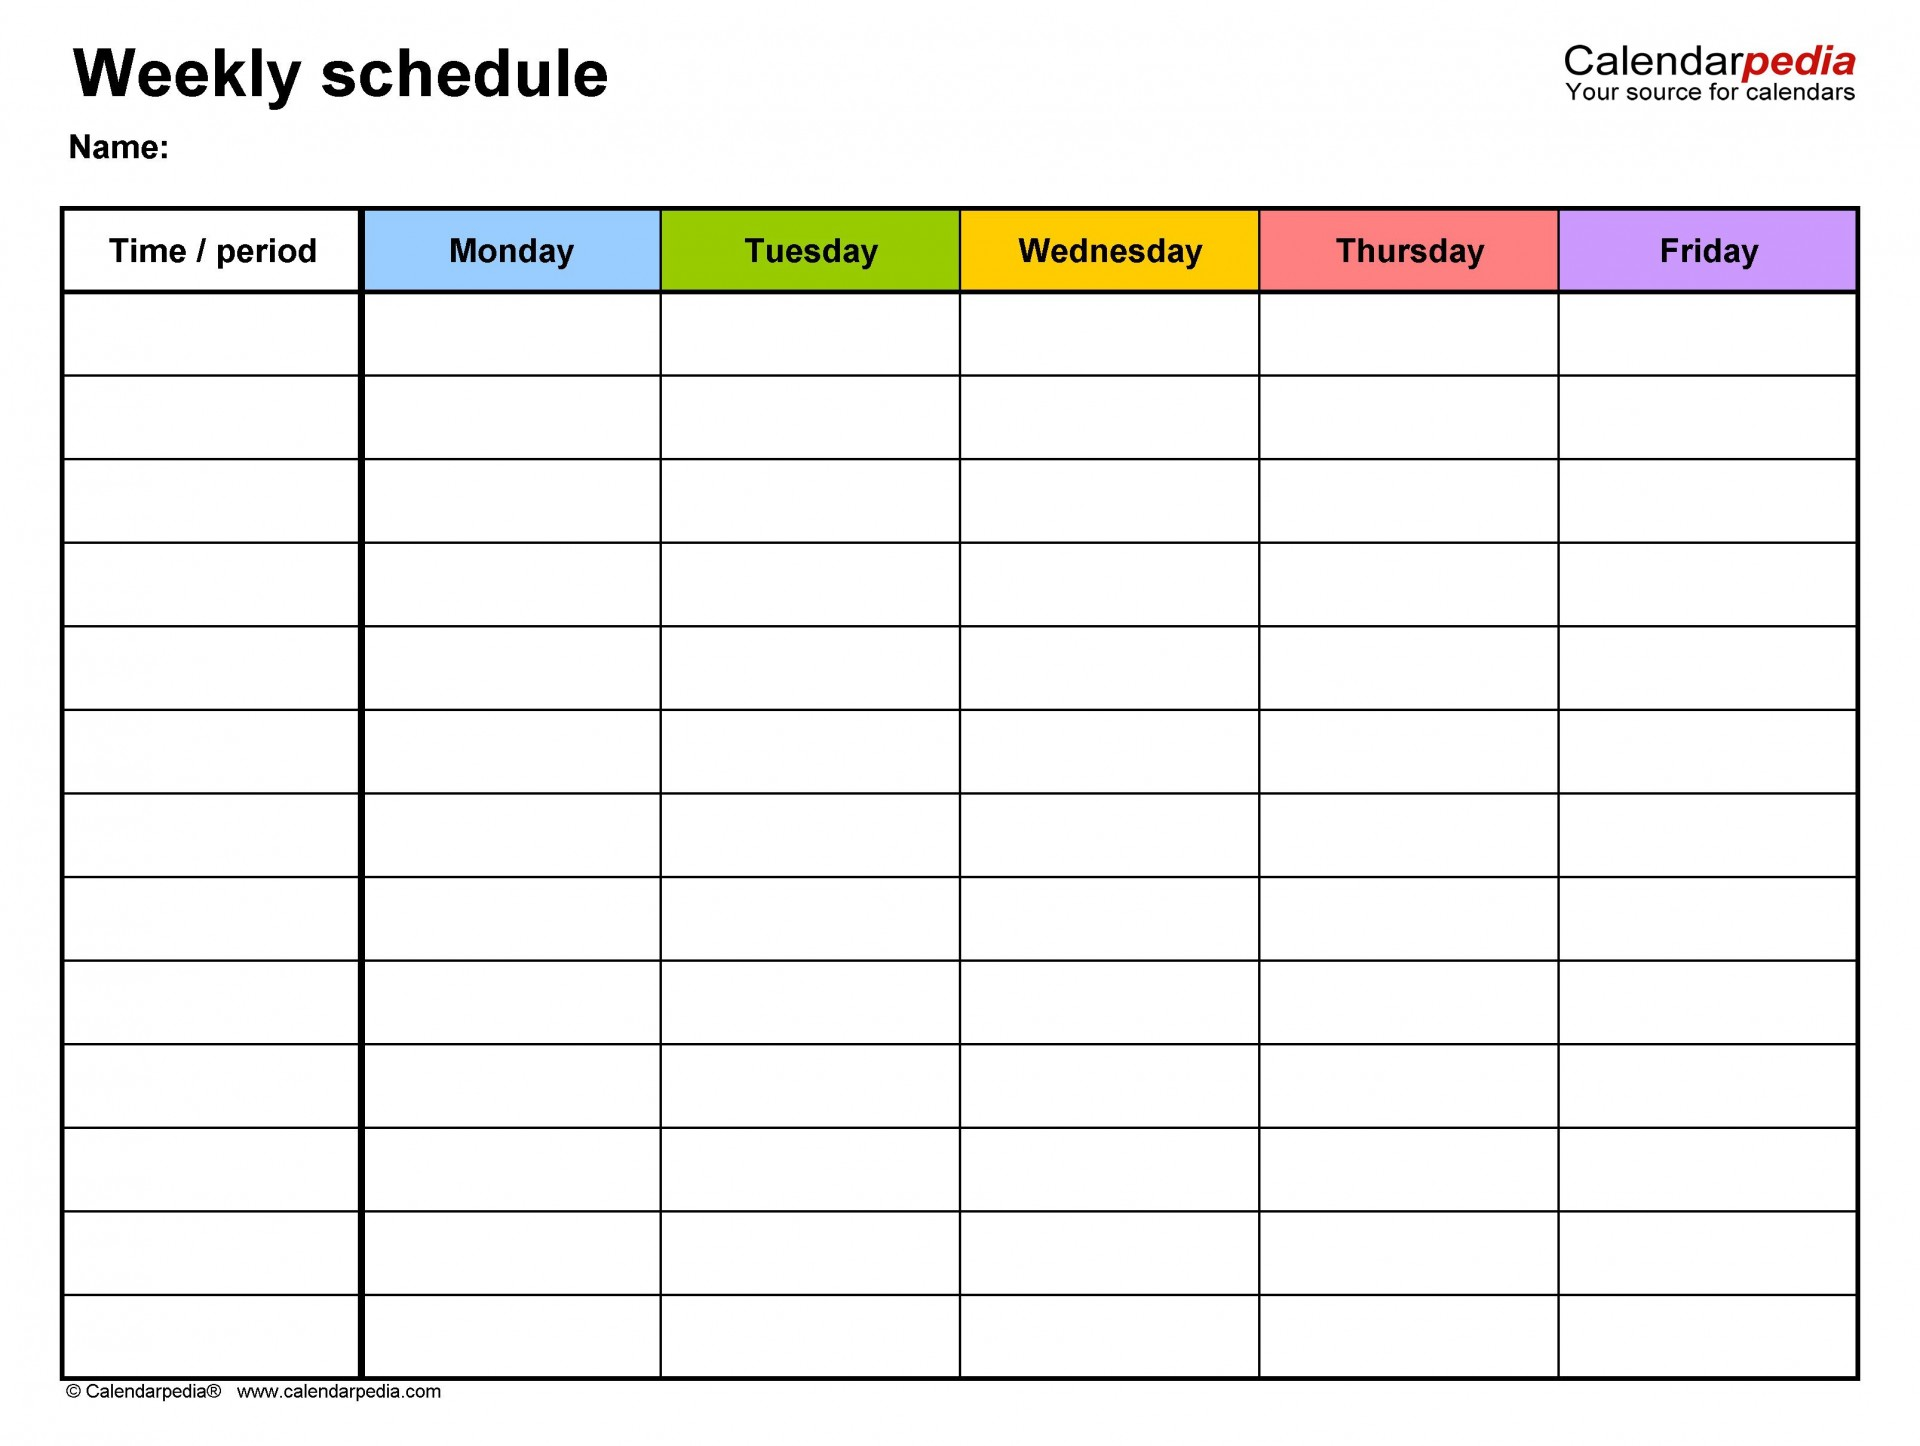 007 Top Weekly Hourly Schedule Template Picture  Free Calendar Word Pdf1920